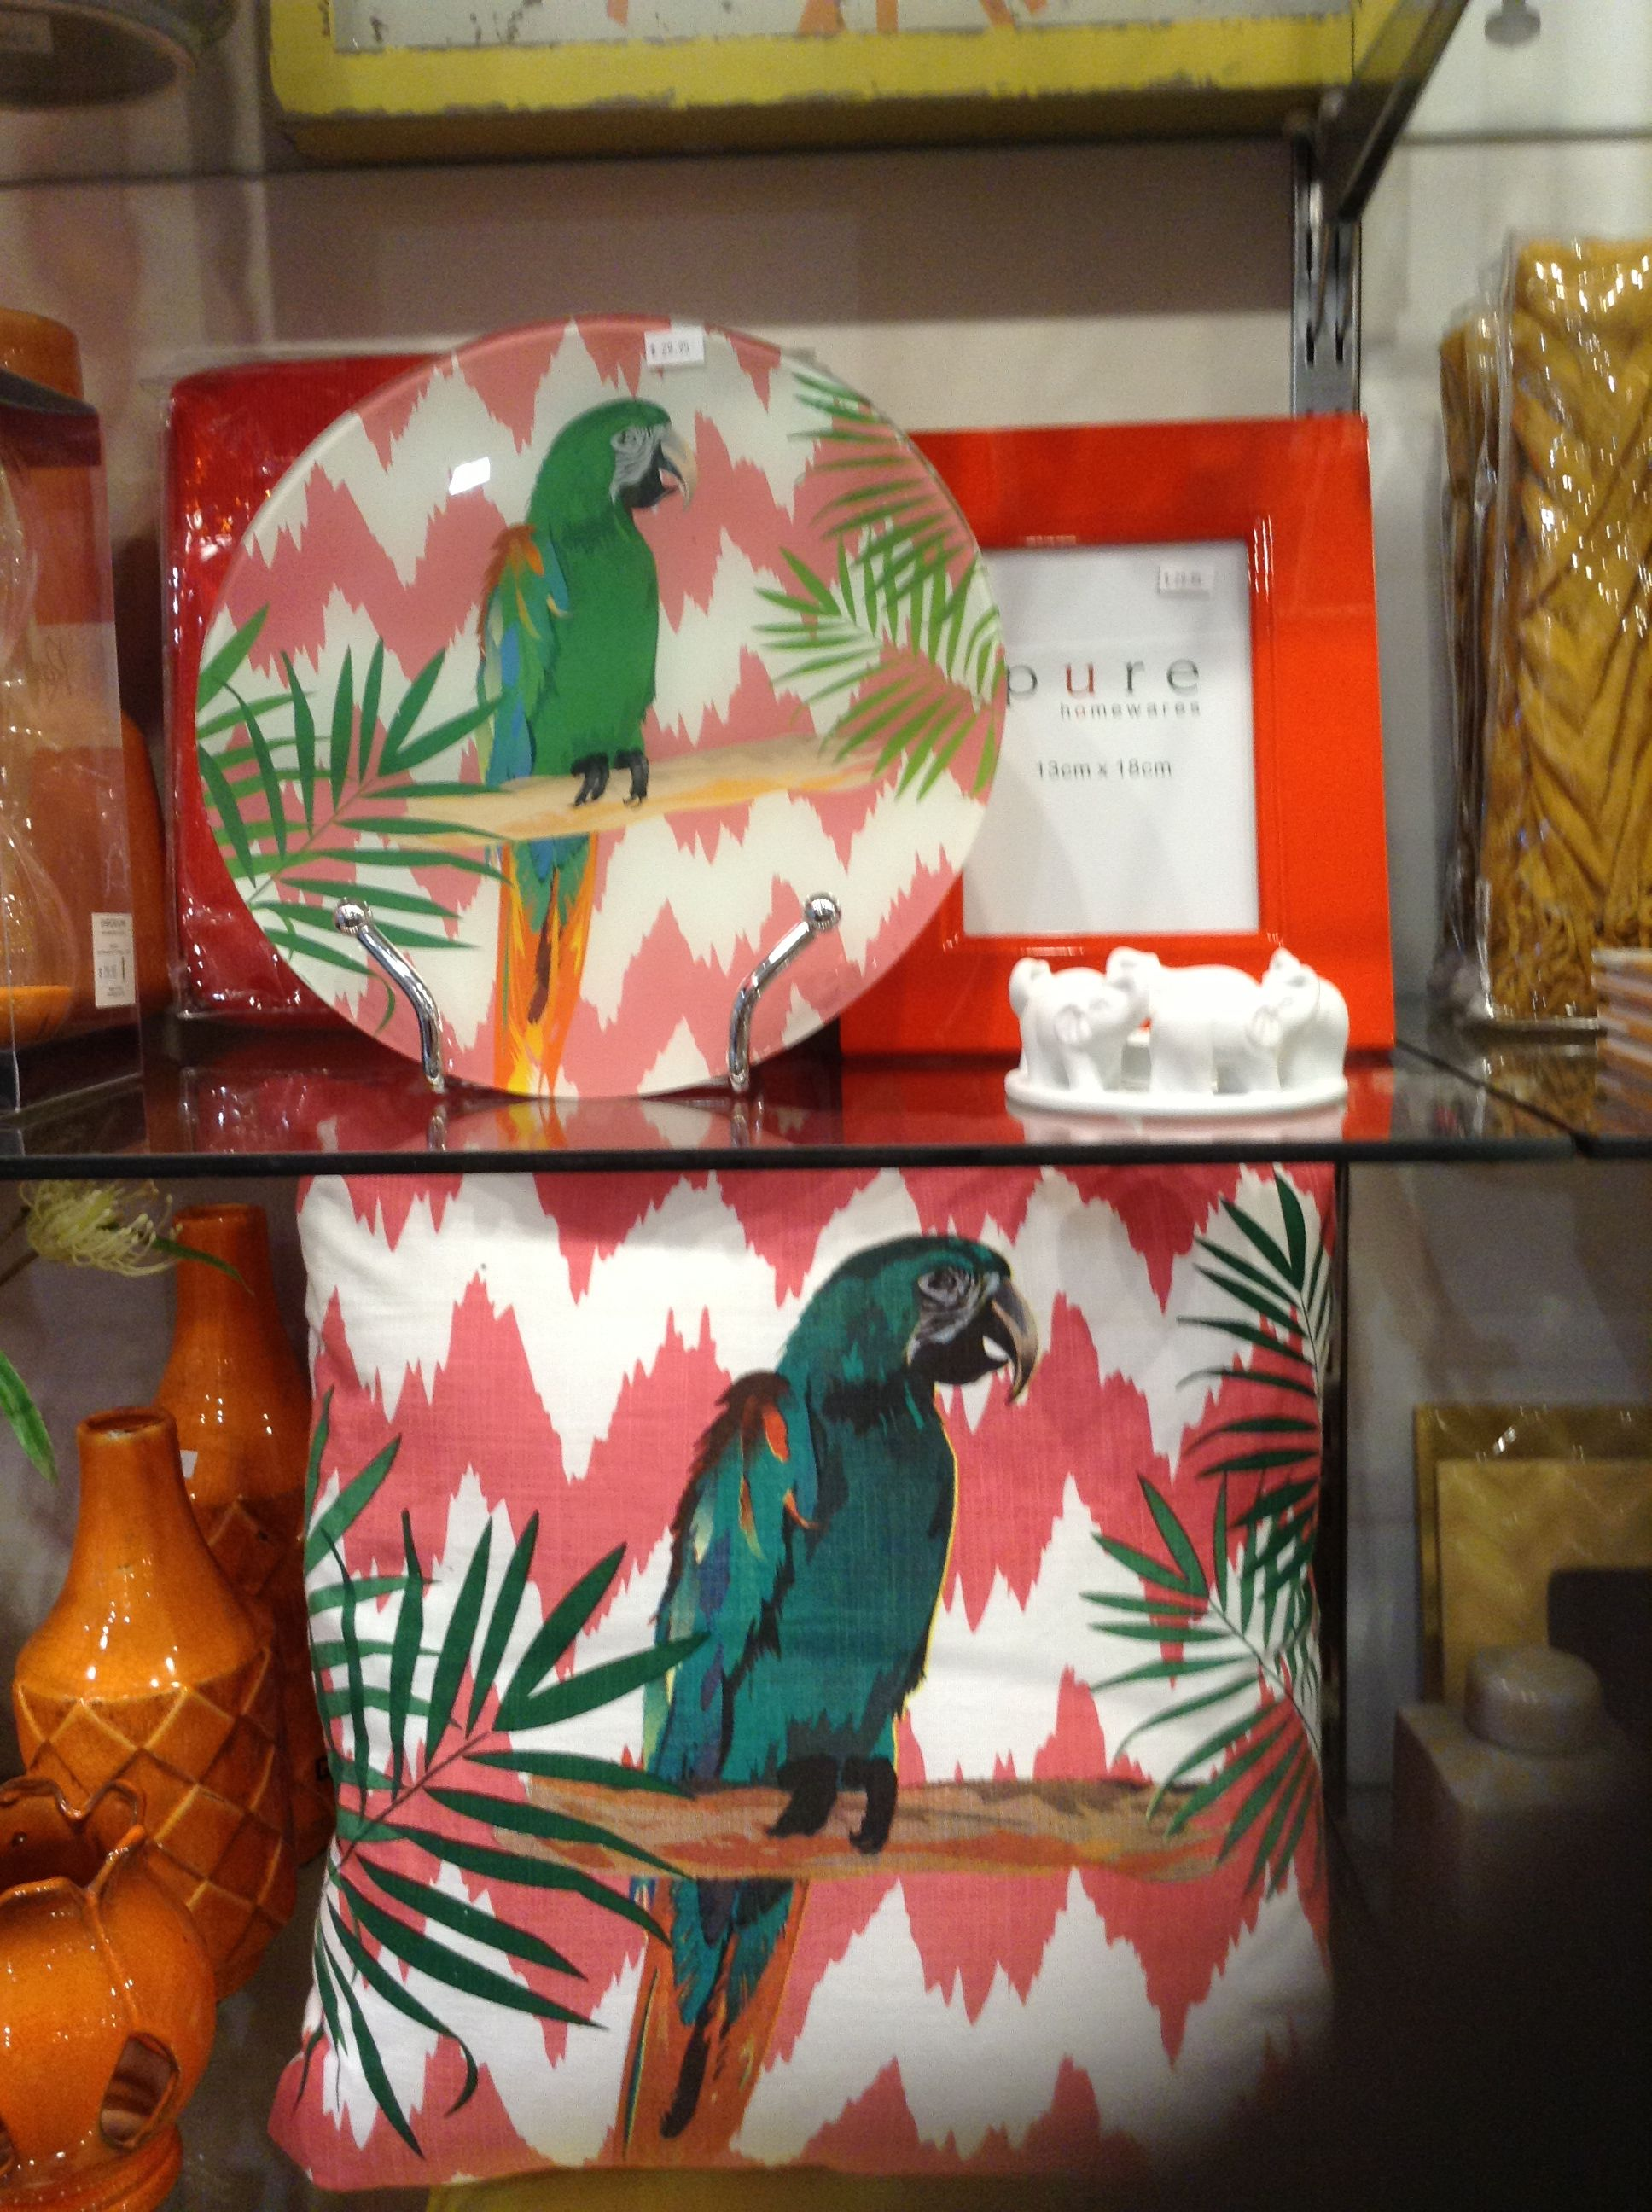 Parrot cushions and plate, 44.95 and 29.95 respectively.